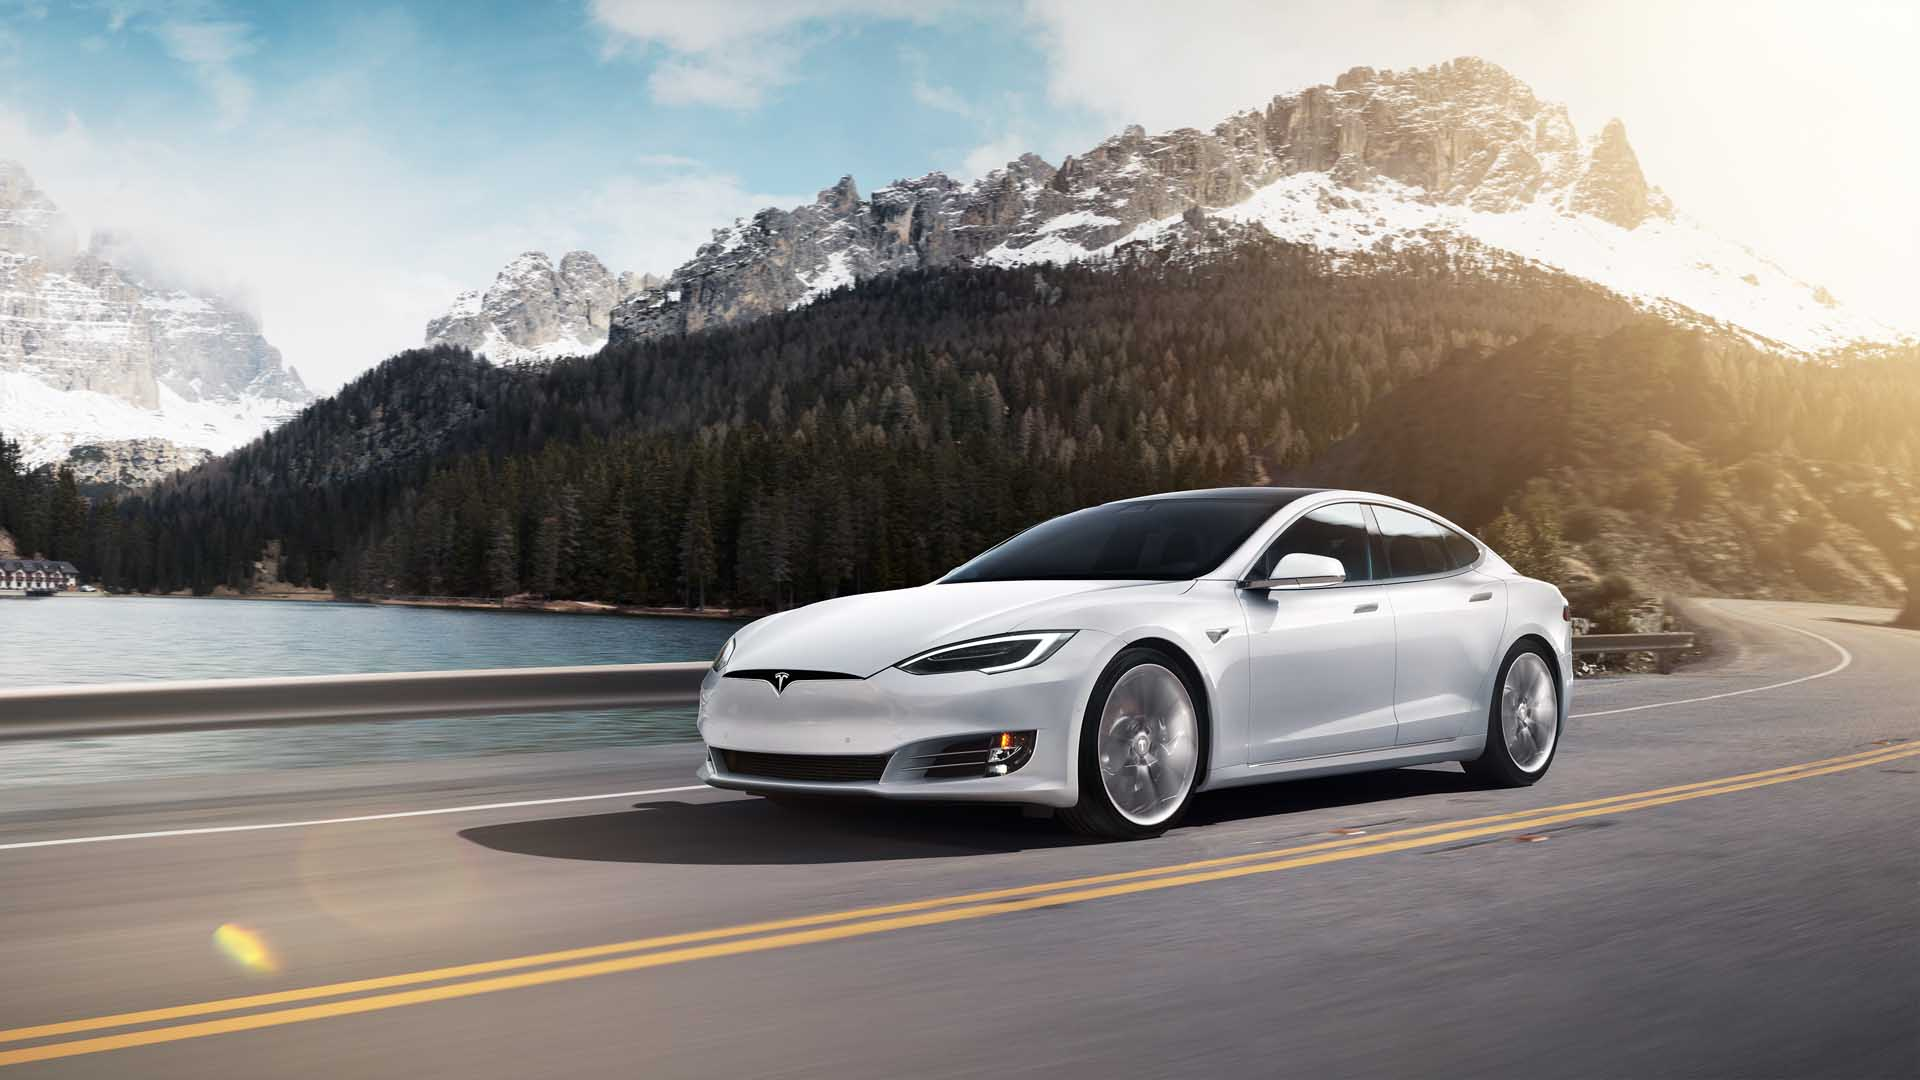 2020 Tesla model s long range plus